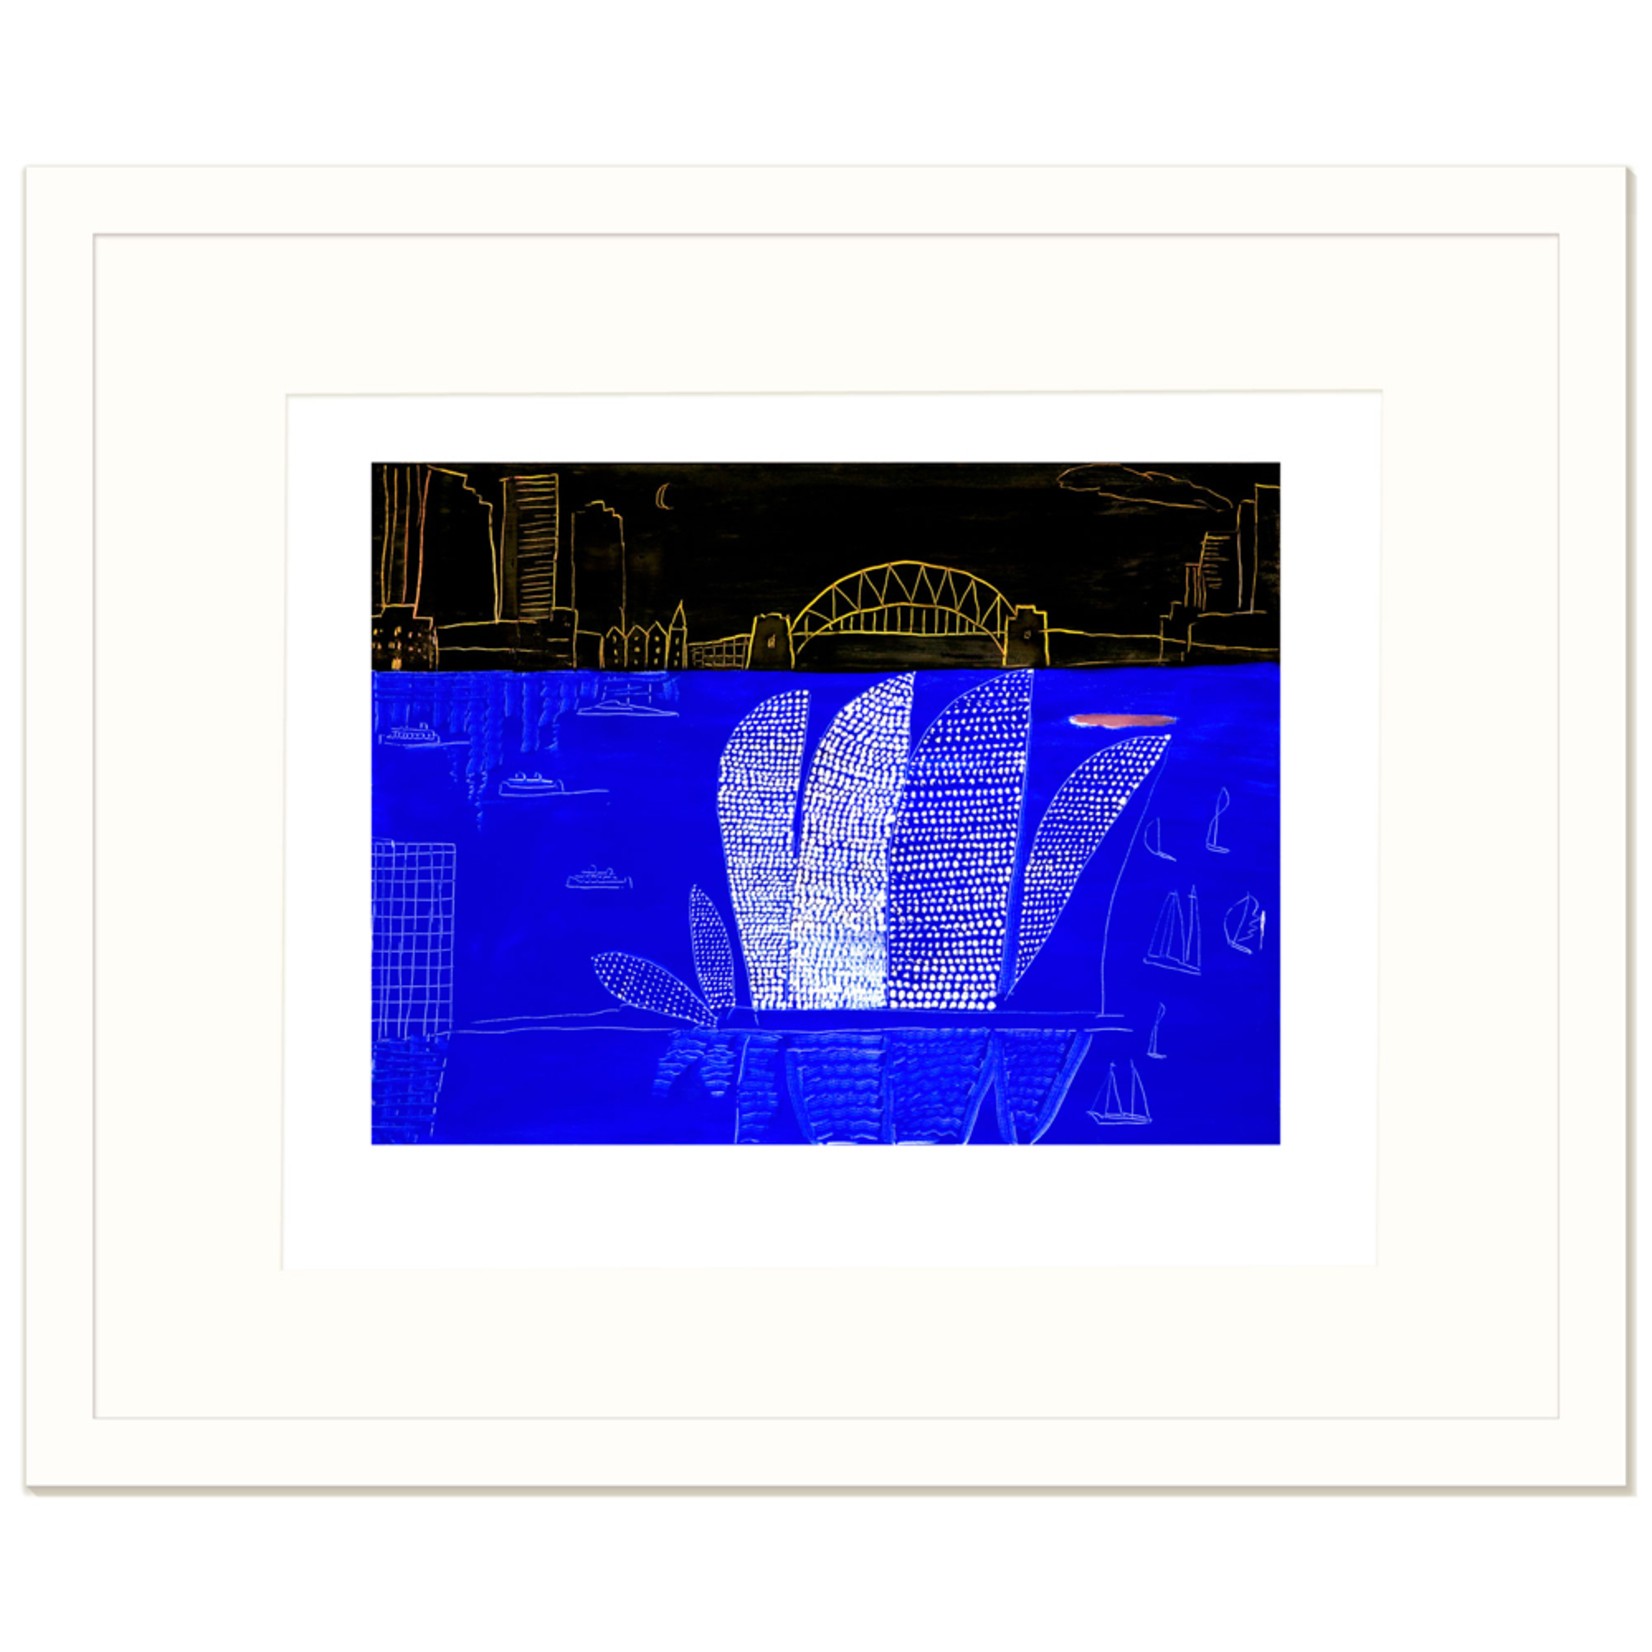 Limited Edition Prints Sydney Harbour, spotted Opera House, black sky, 2006